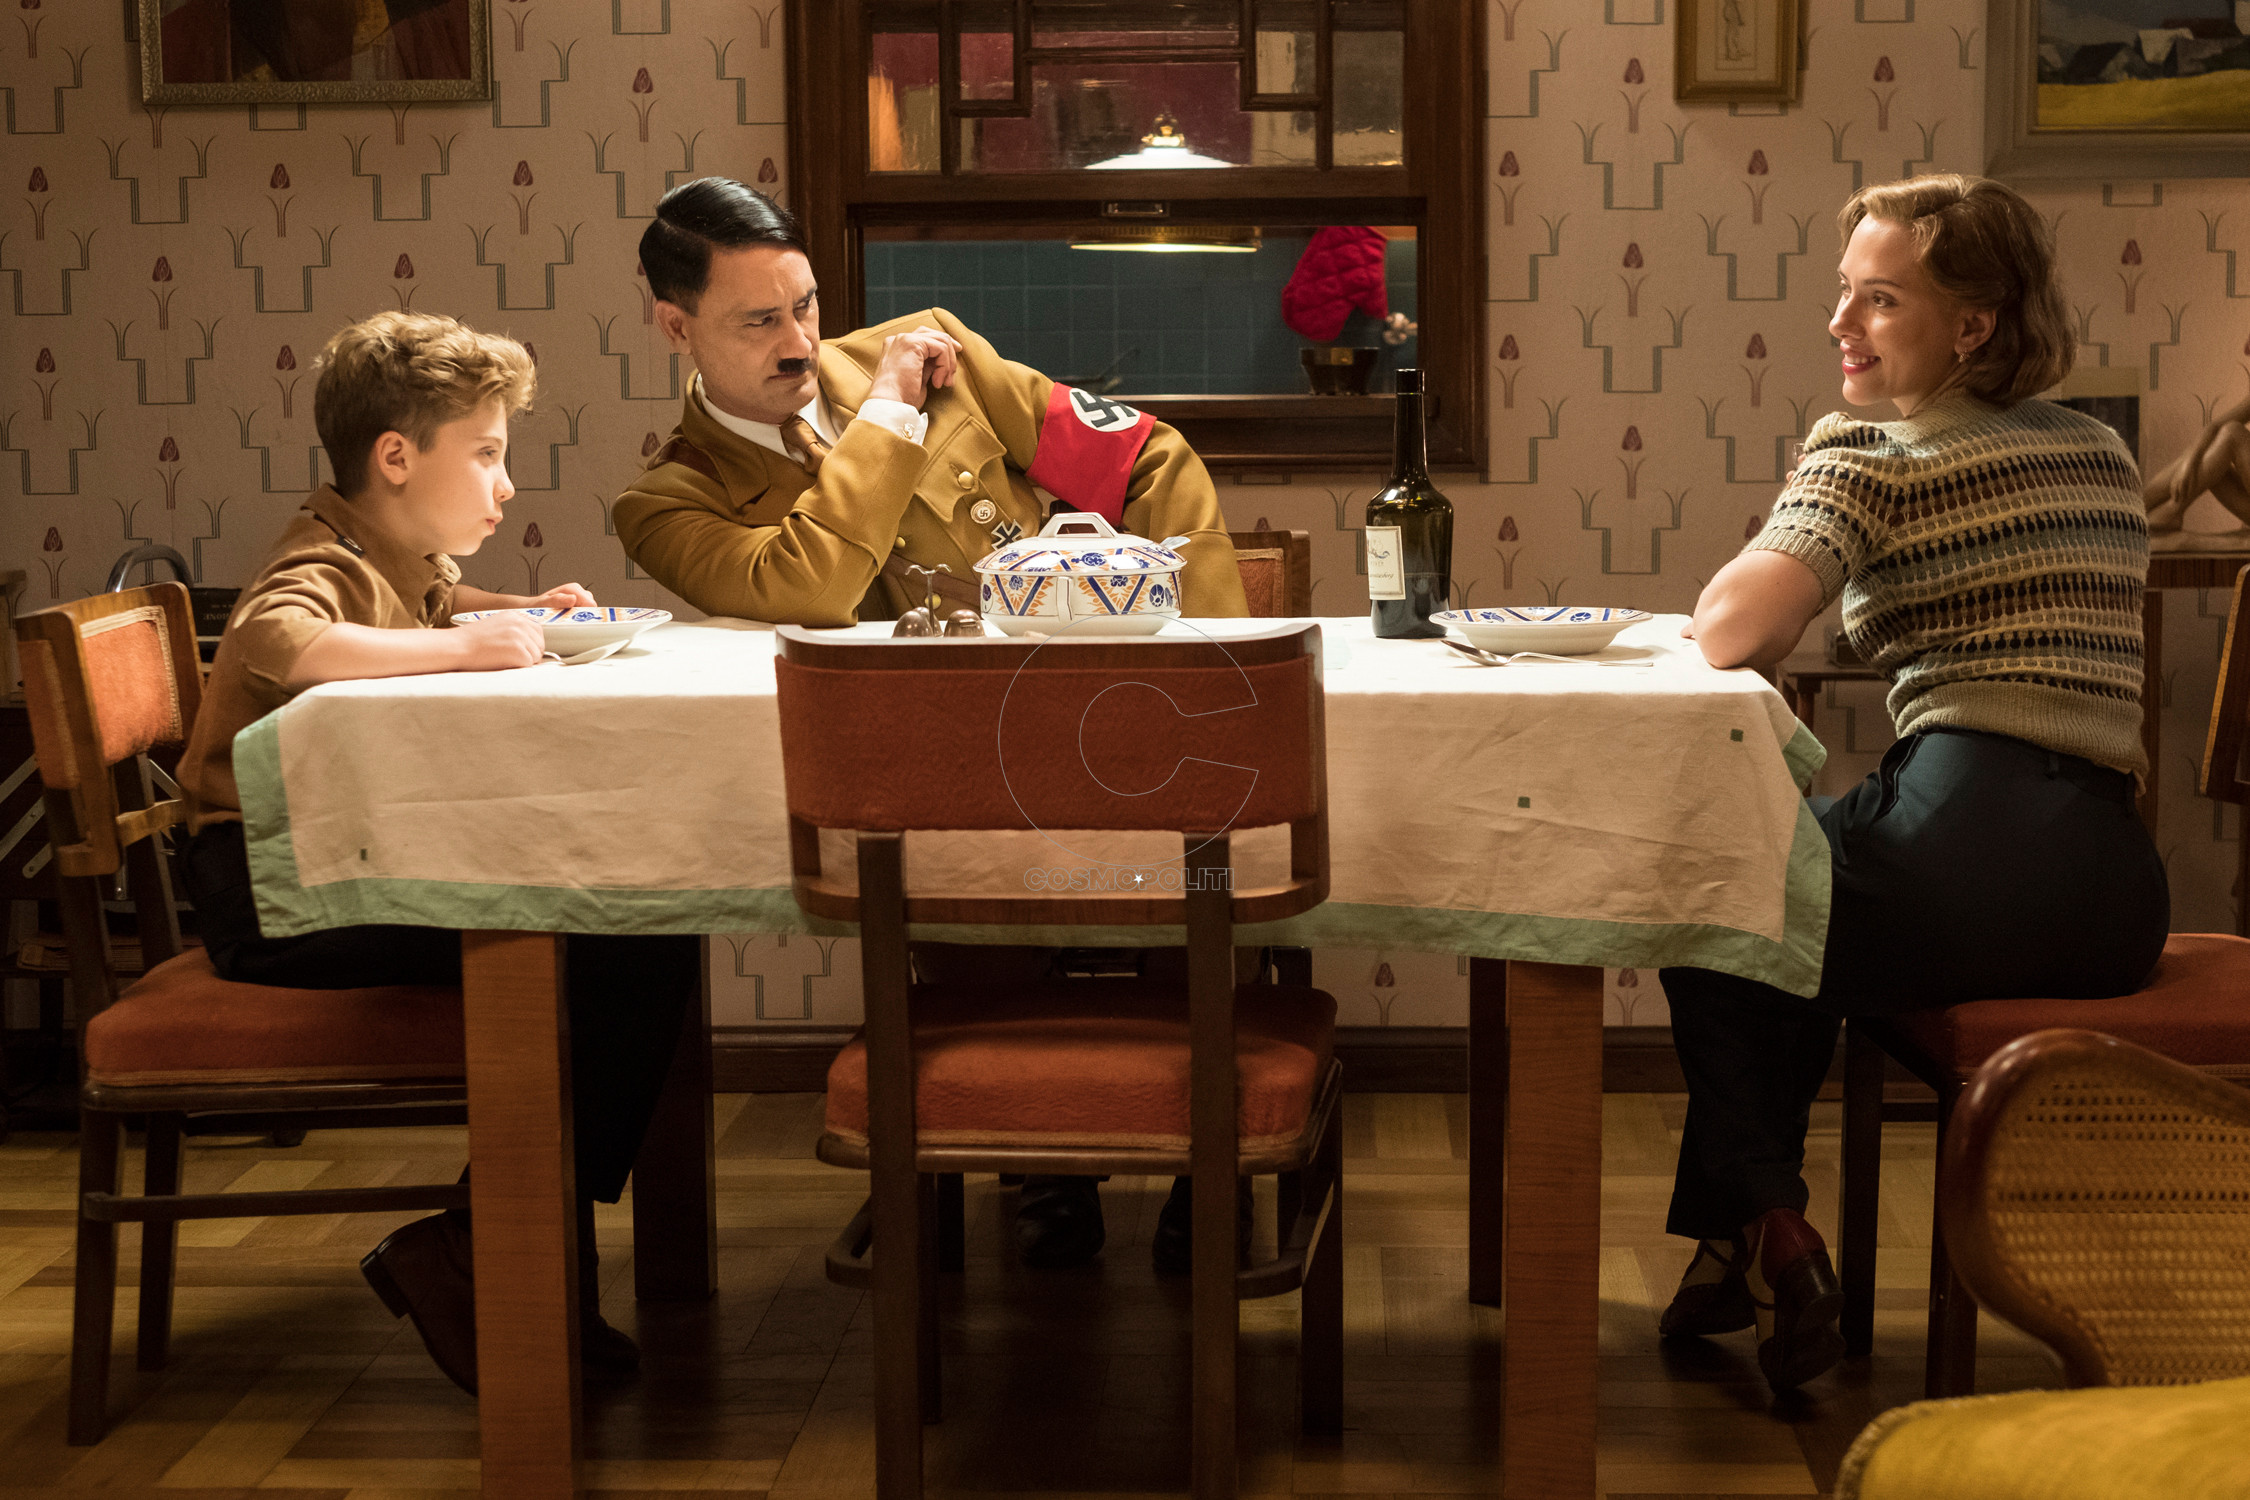 First still from the set of WW2 satire, JOJO RABIT. (From L-R): Jojo (Roman Griffin Davis) has dinner with his imaginary friend Adolf (Writer/Director Taika Waititi), and his mother, Rosie (Scarlet Johansson). Photo by Kimberley French. © 2020 Twentieth Century Fox Film Corporation All Rights Reserved